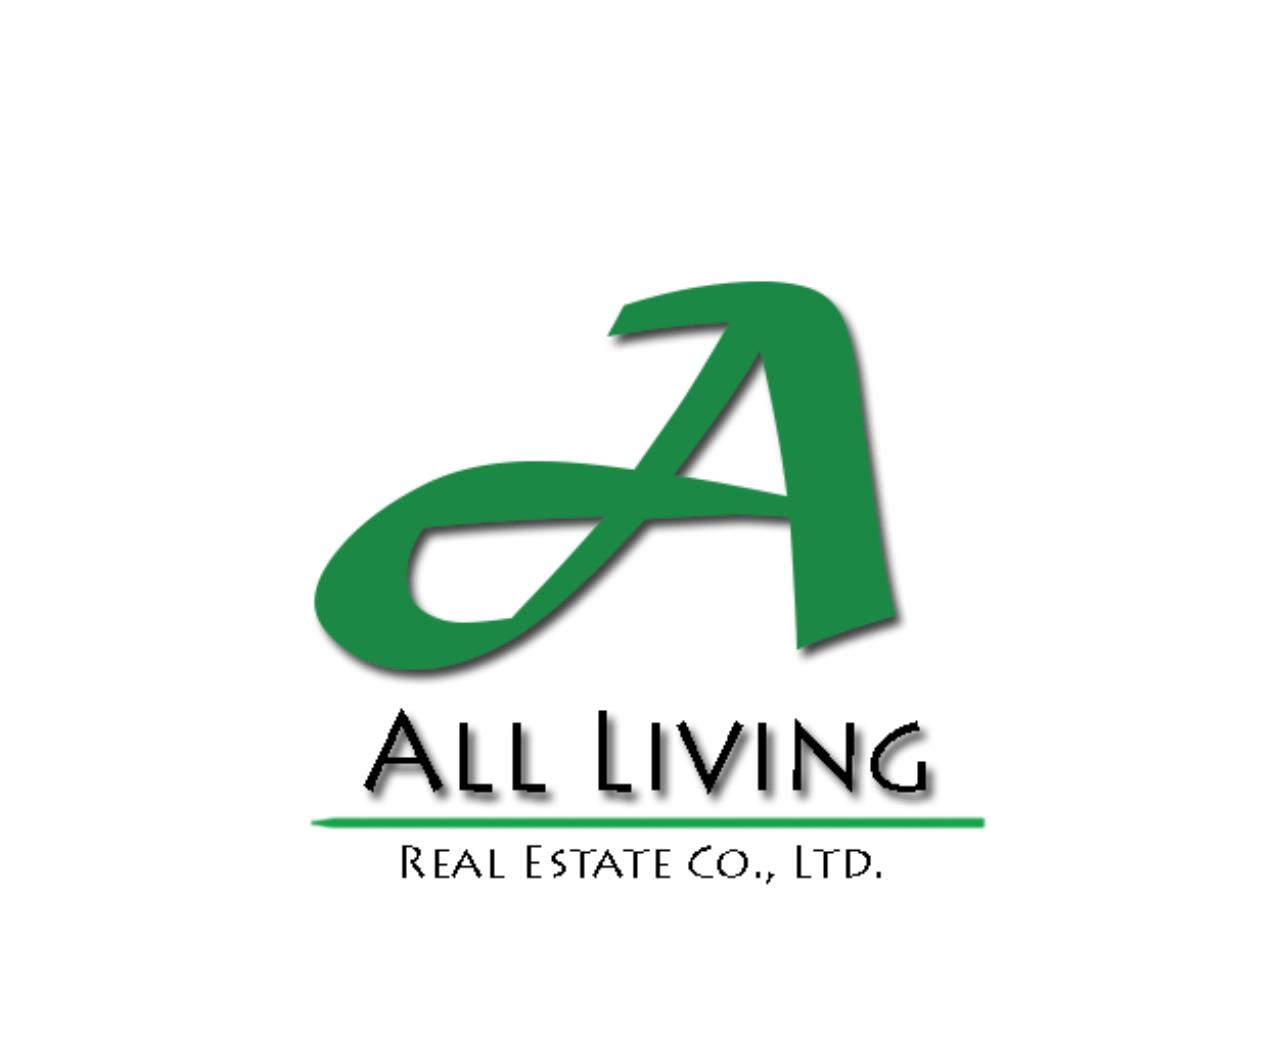 All Living Real Estate Co., Ltd logo